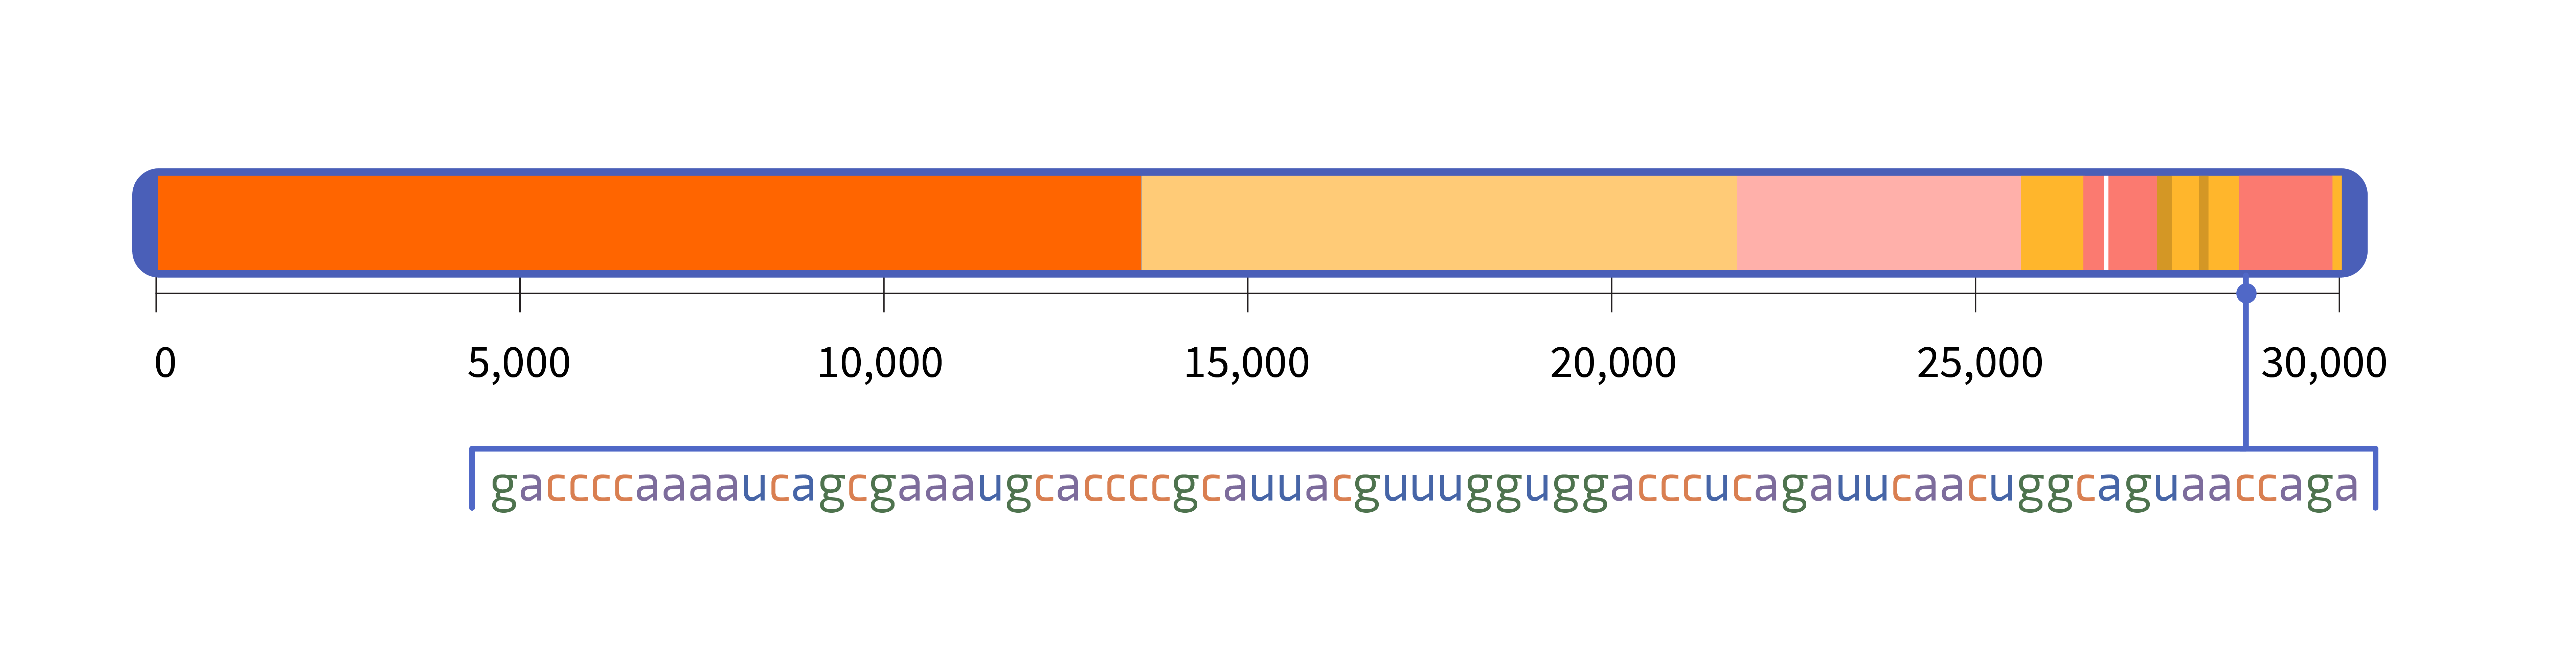 A horizontal rectangle representing the SARS-CoV-2 genome and a pointer indicating the location of a 72-letter sequence within the genome.